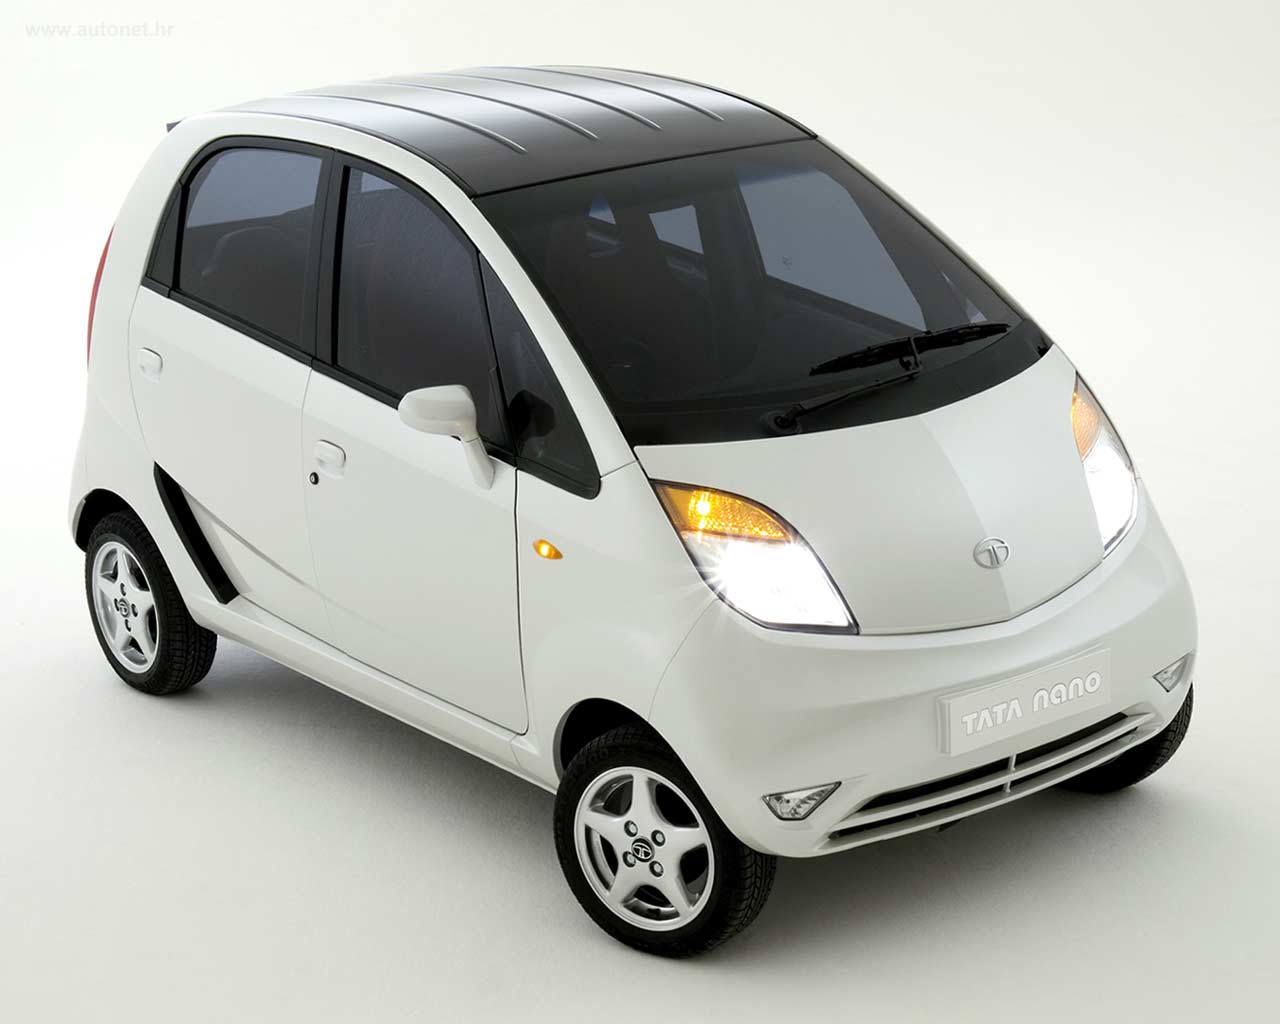 Tata is remaking Nano for the U.S. and Europe